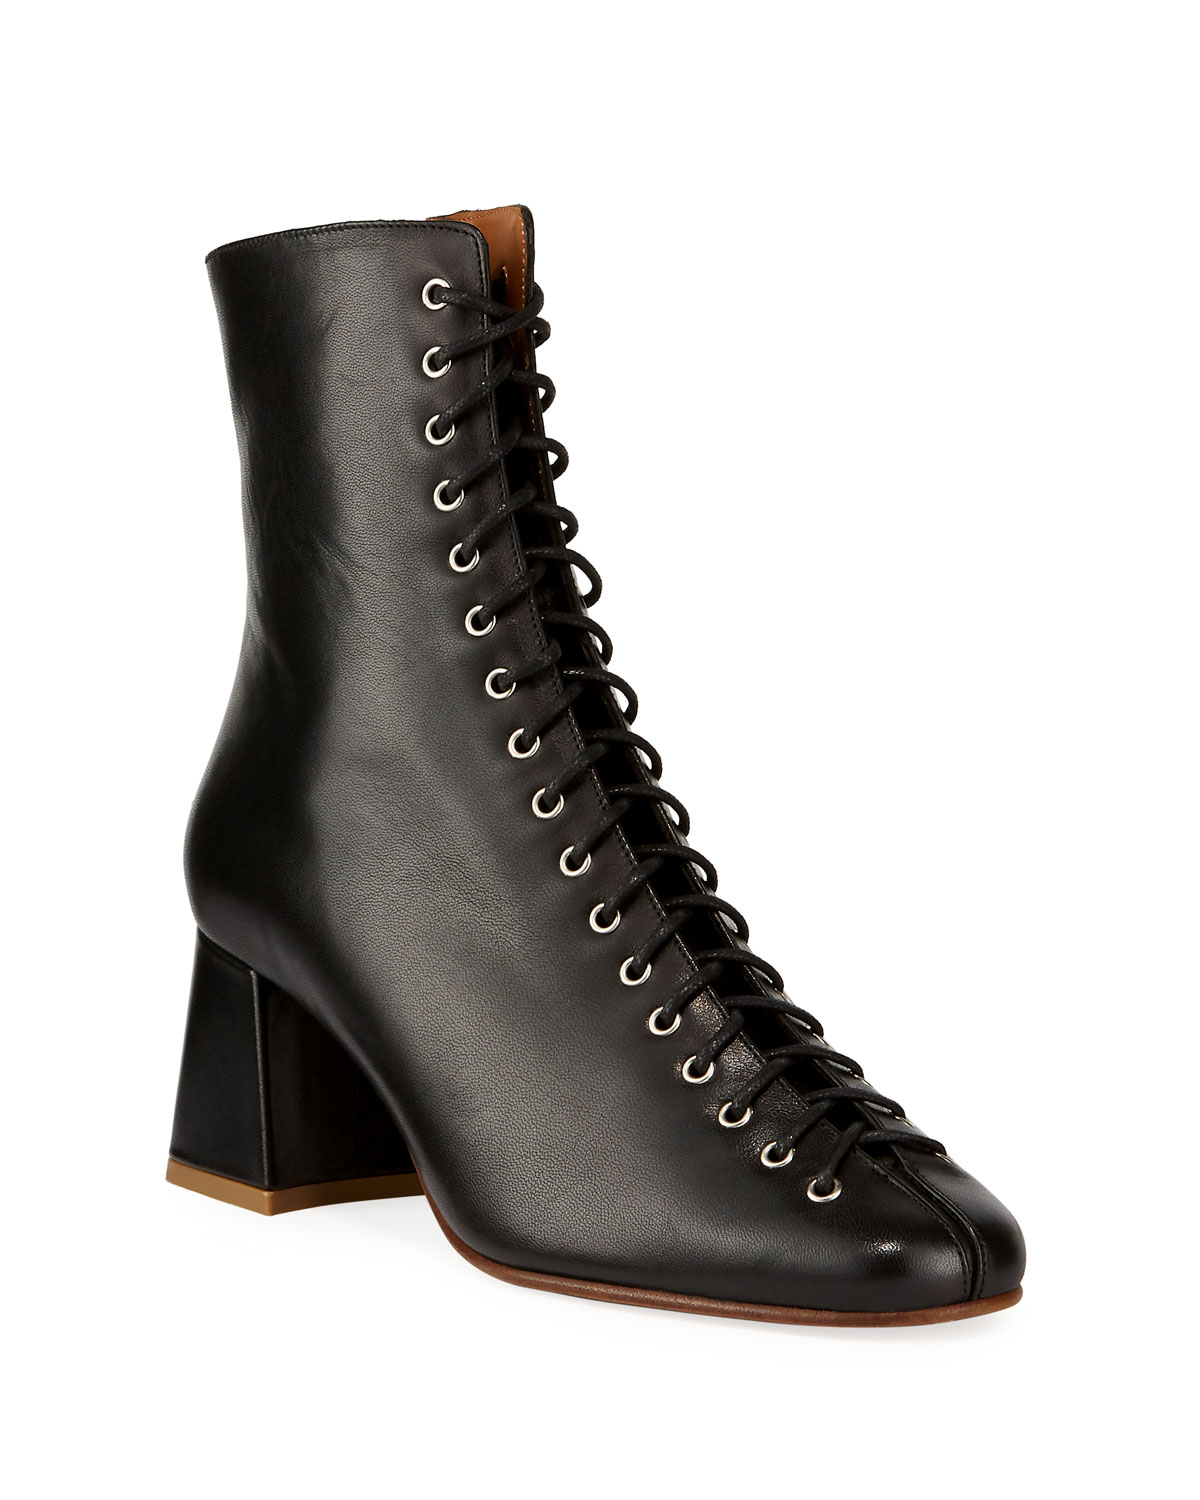 Becca Smooth Laced Booties by BY FAR, available on neimanmarcus.com for $583 Emma Roberts Shoes Exact Product